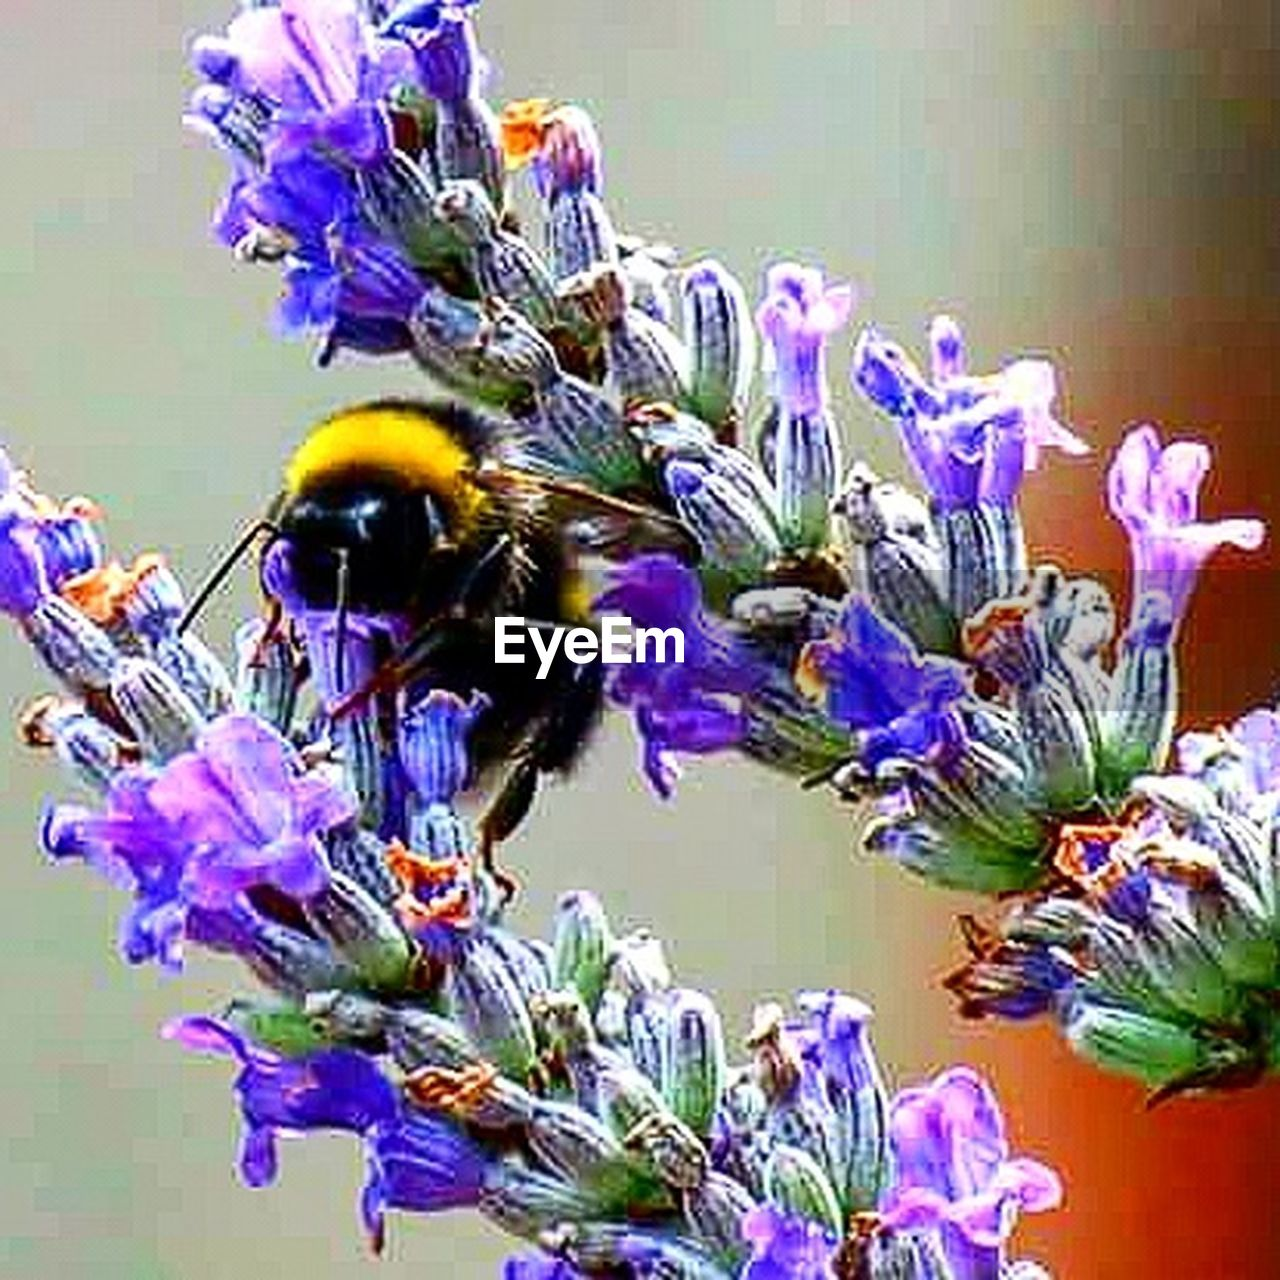 flower, insect, fragility, purple, beauty in nature, nature, animal themes, bee, animals in the wild, honey bee, petal, no people, freshness, one animal, close-up, animal wildlife, flower head, plant, day, pollination, outdoors, buzzing